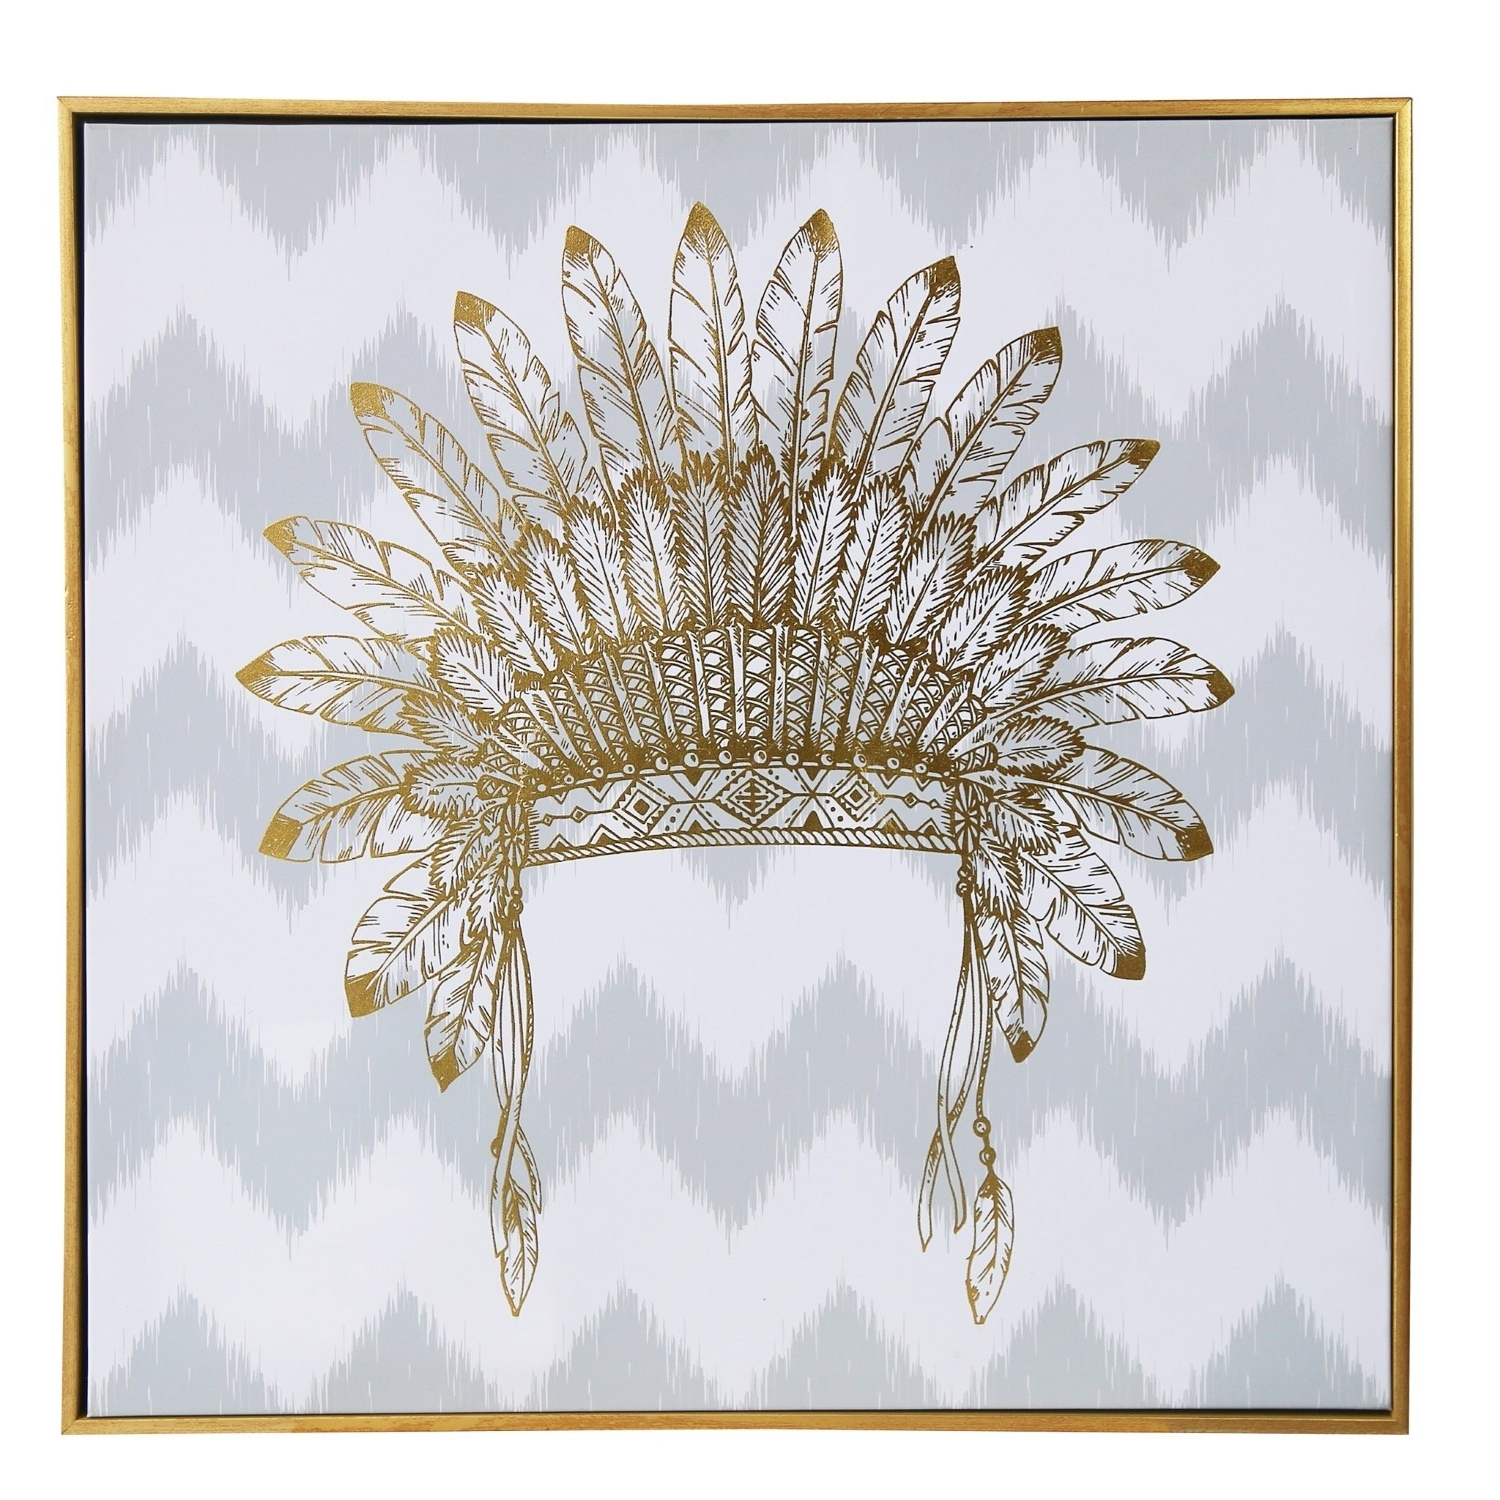 Most Up To Date Wall Art/canvas/mdf/perspex Frame/war Bonnet In Gold Foil/24*2*24 Throughout Gold Wall Art (View 13 of 15)